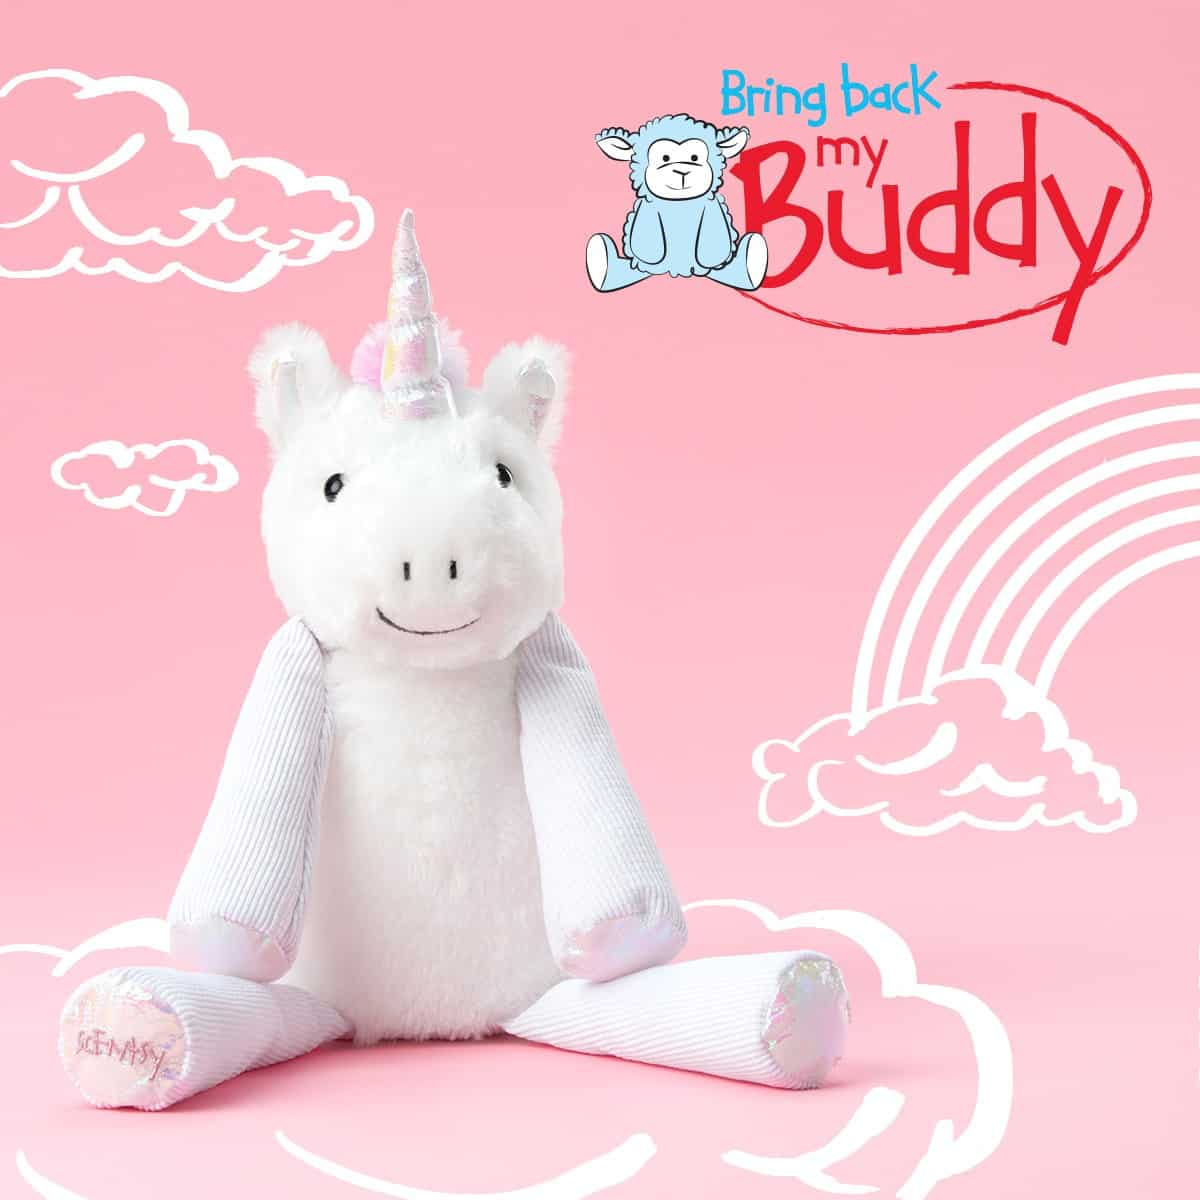 STELLA THE UNICORN SCENTSY BRING BACK MY BUDDY